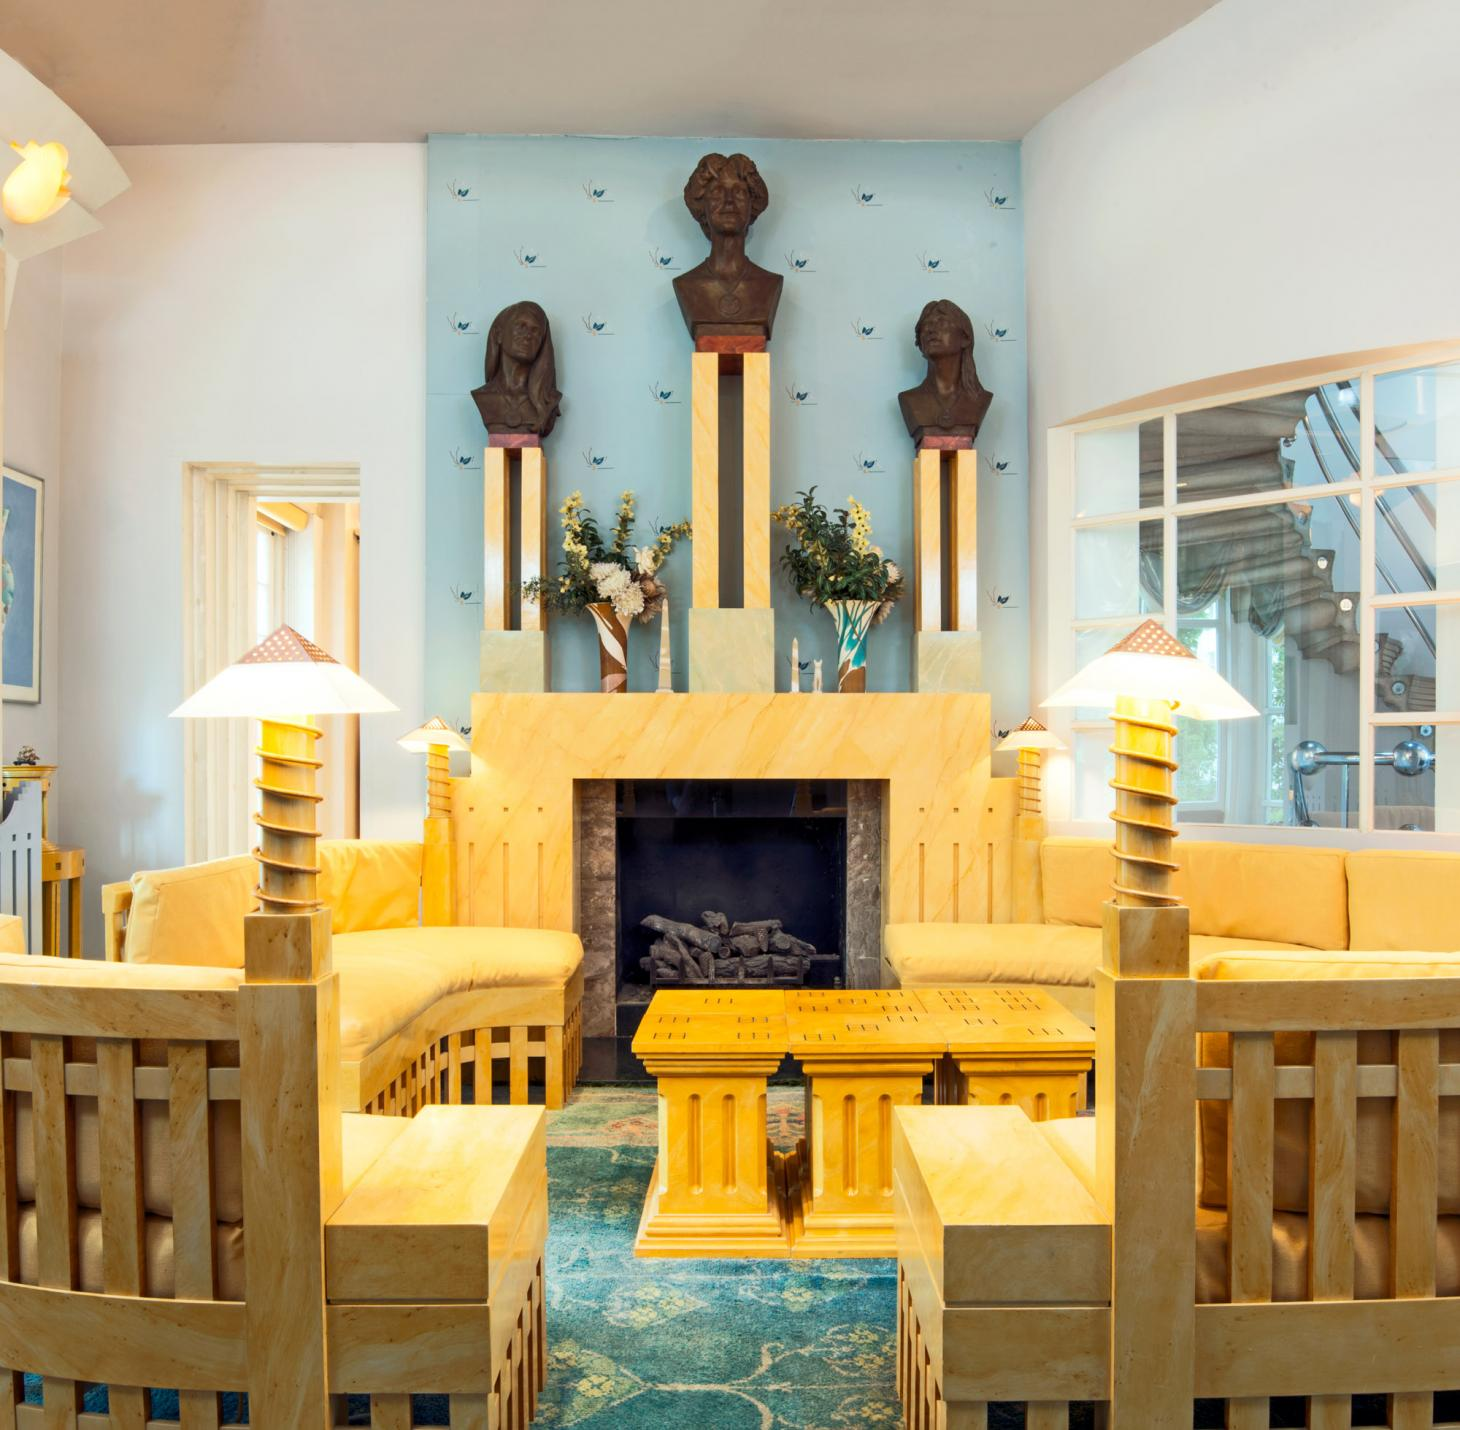 living room at Charles Jencks' Cosmic House as it turns into museum